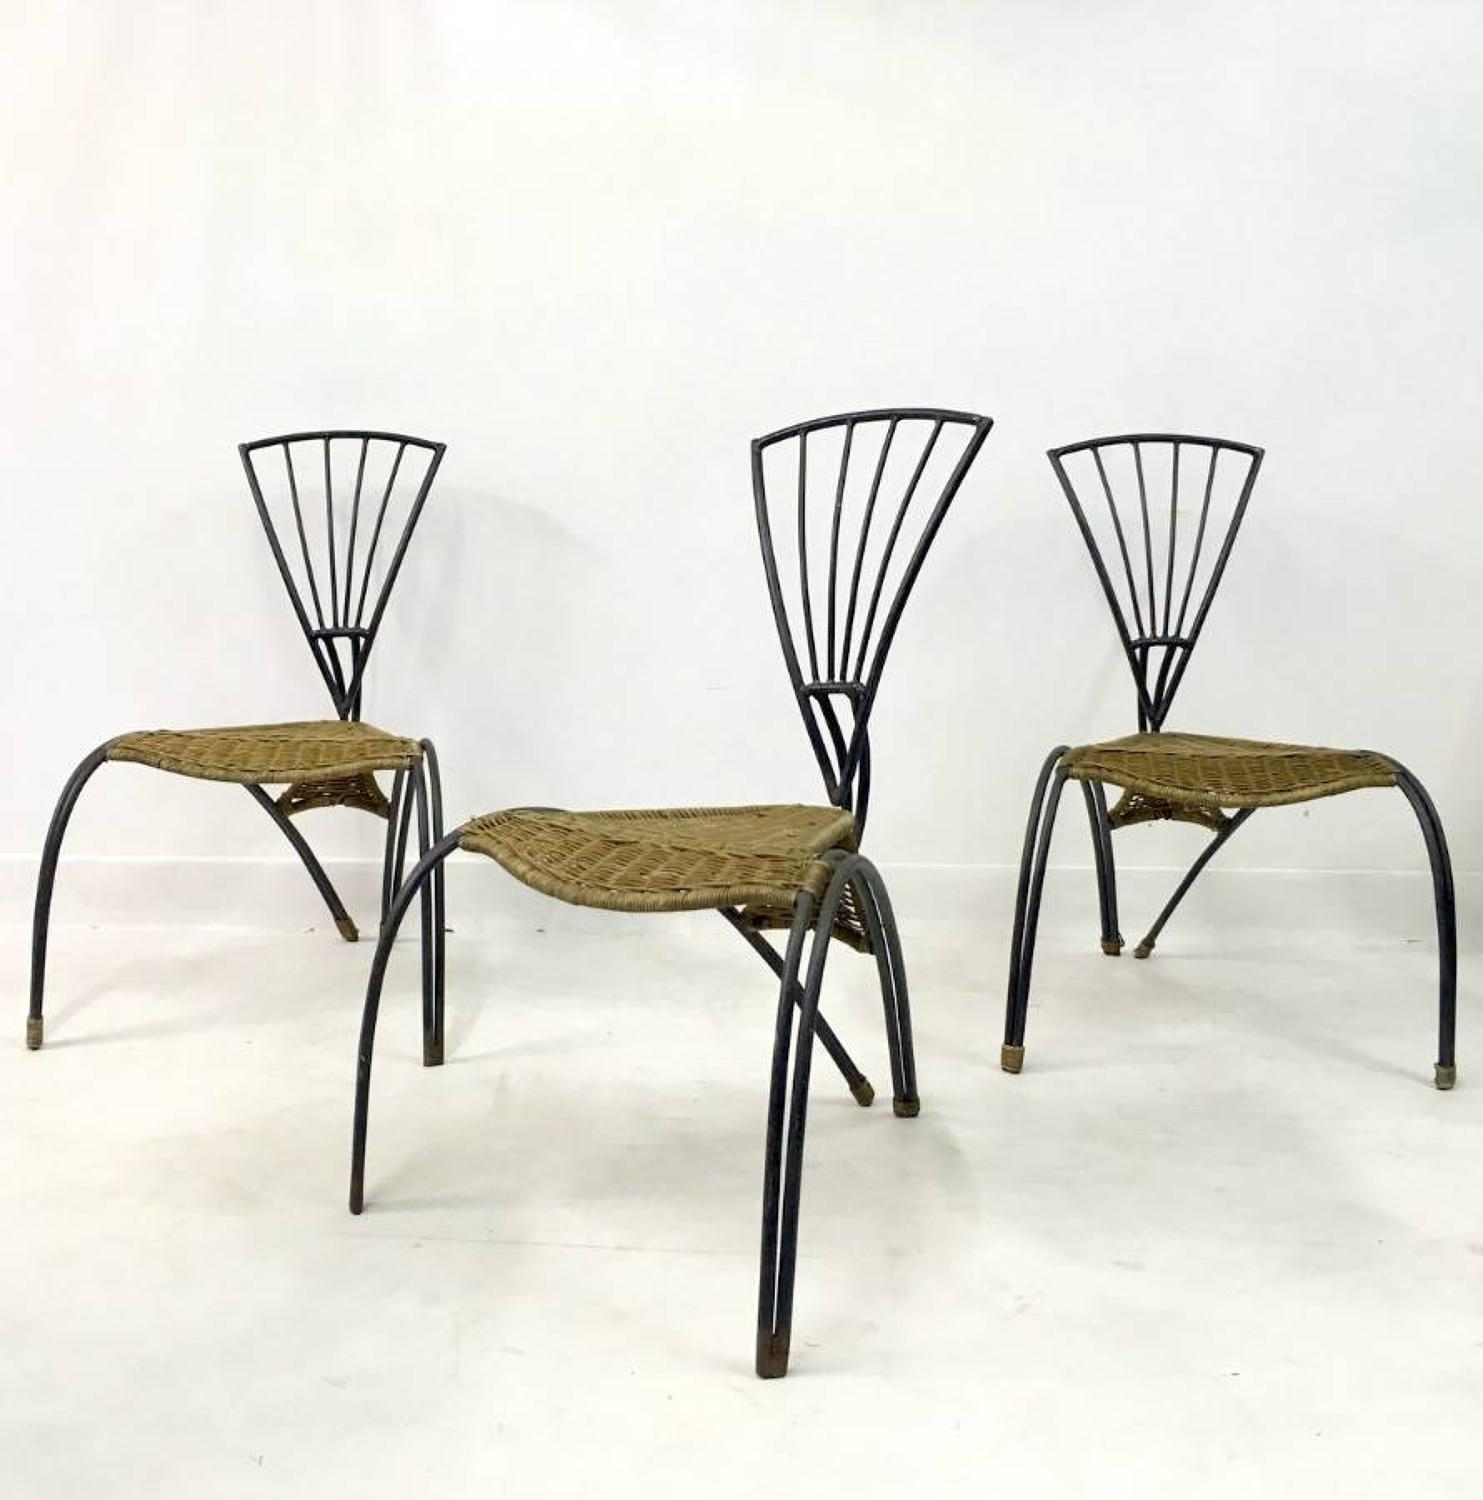 A set of wrought iron and rattan chairs